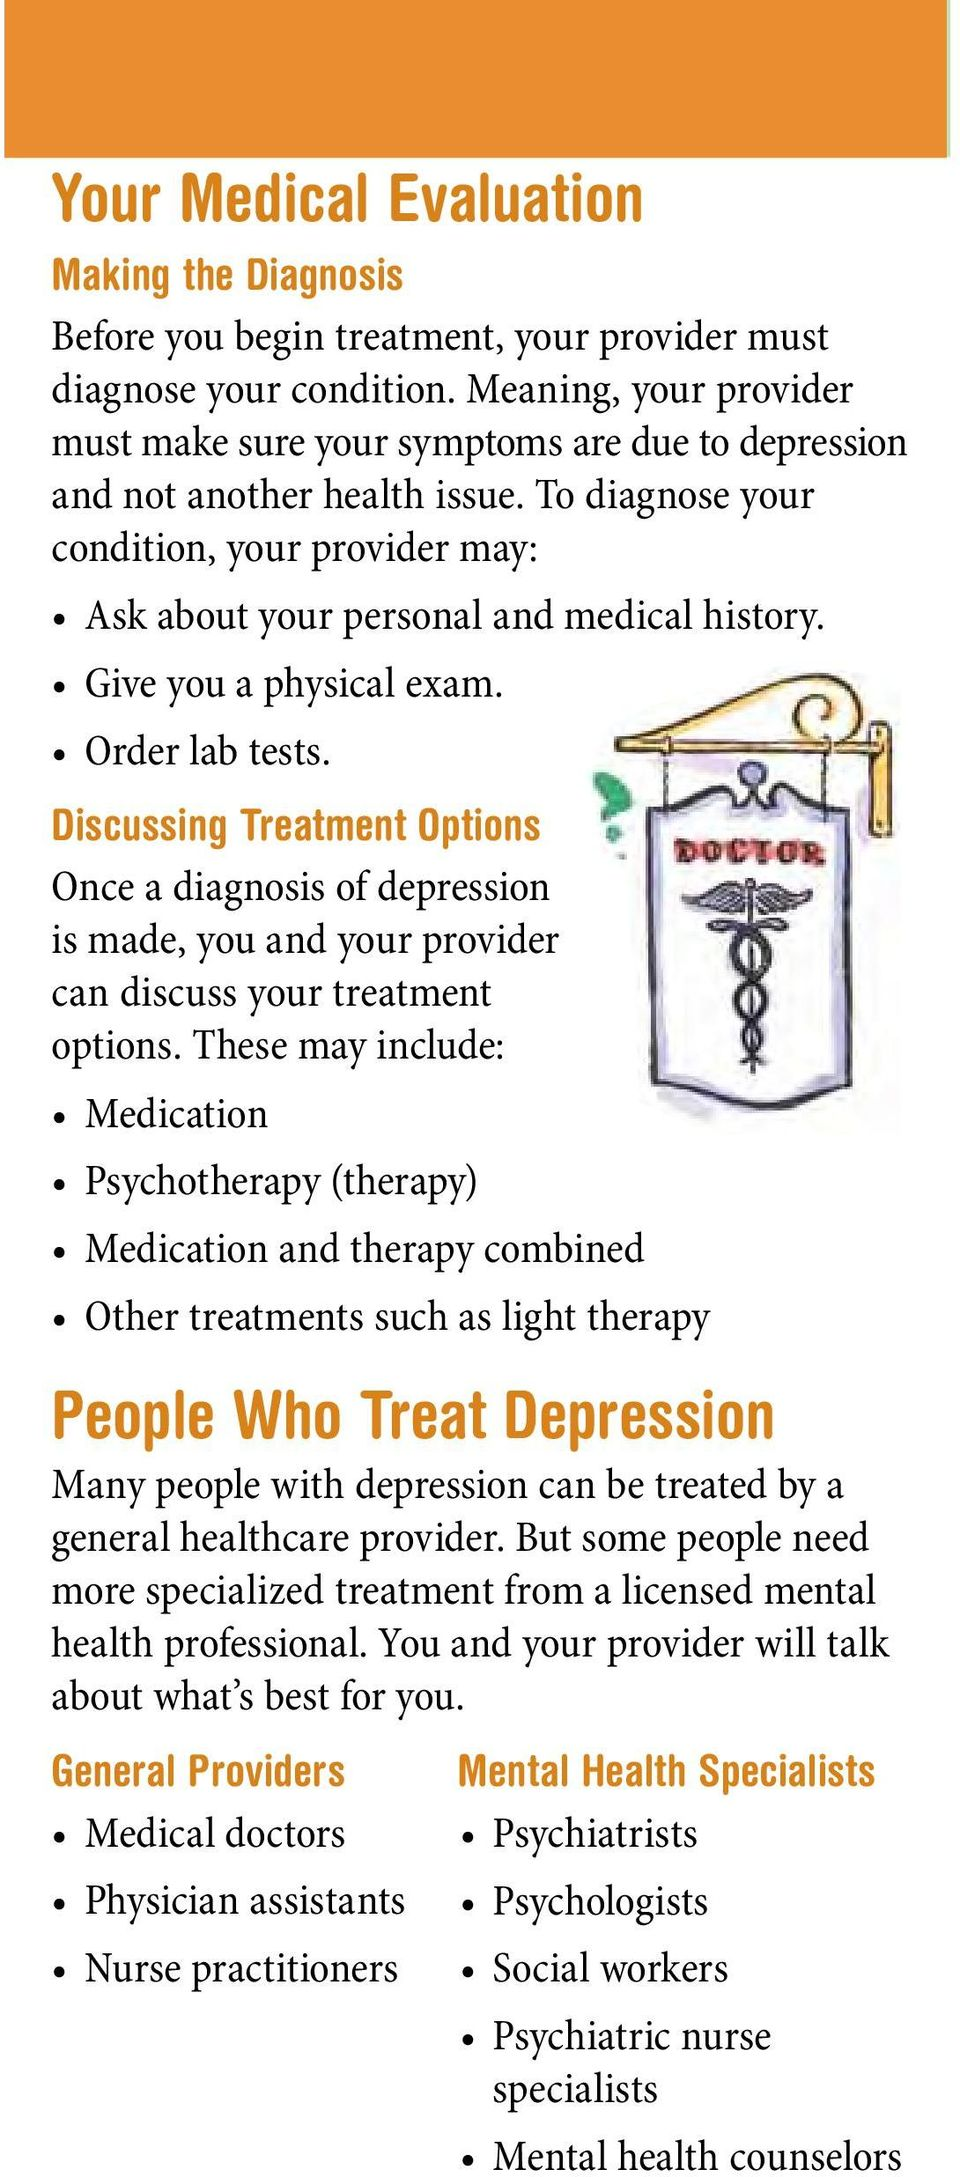 Give you a physical exam. Order lab tests. Discussing Treatment Options Once a diagnosis of depression is made, you and your provider can discuss your treatment options.